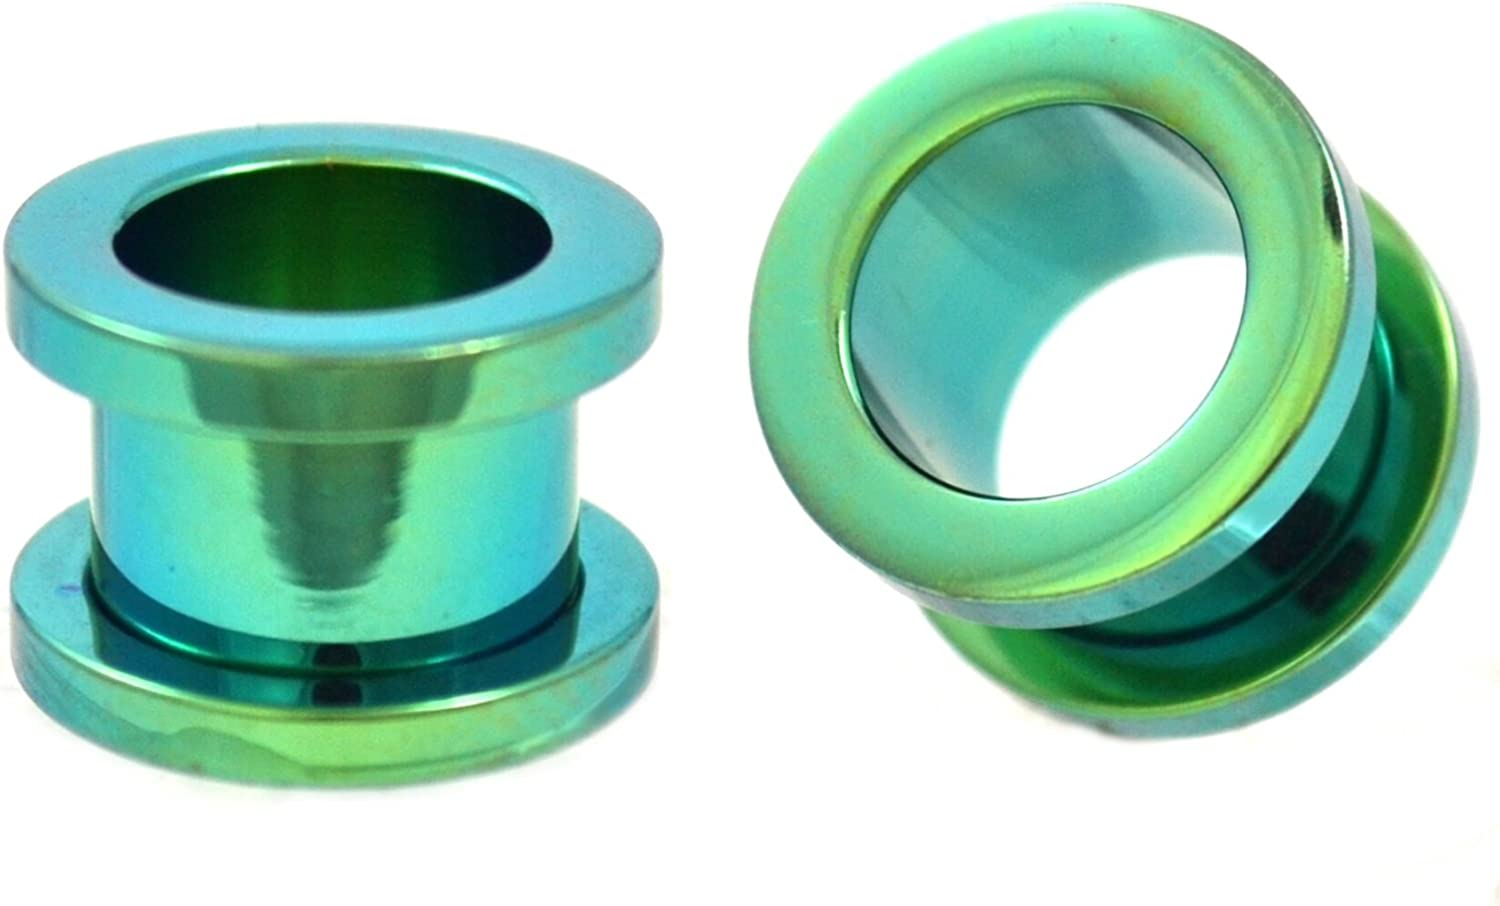 Pair of Green Titanium Plated Steel Fit Plugs Screw Ear New Shipping Free New product!! Tunnels